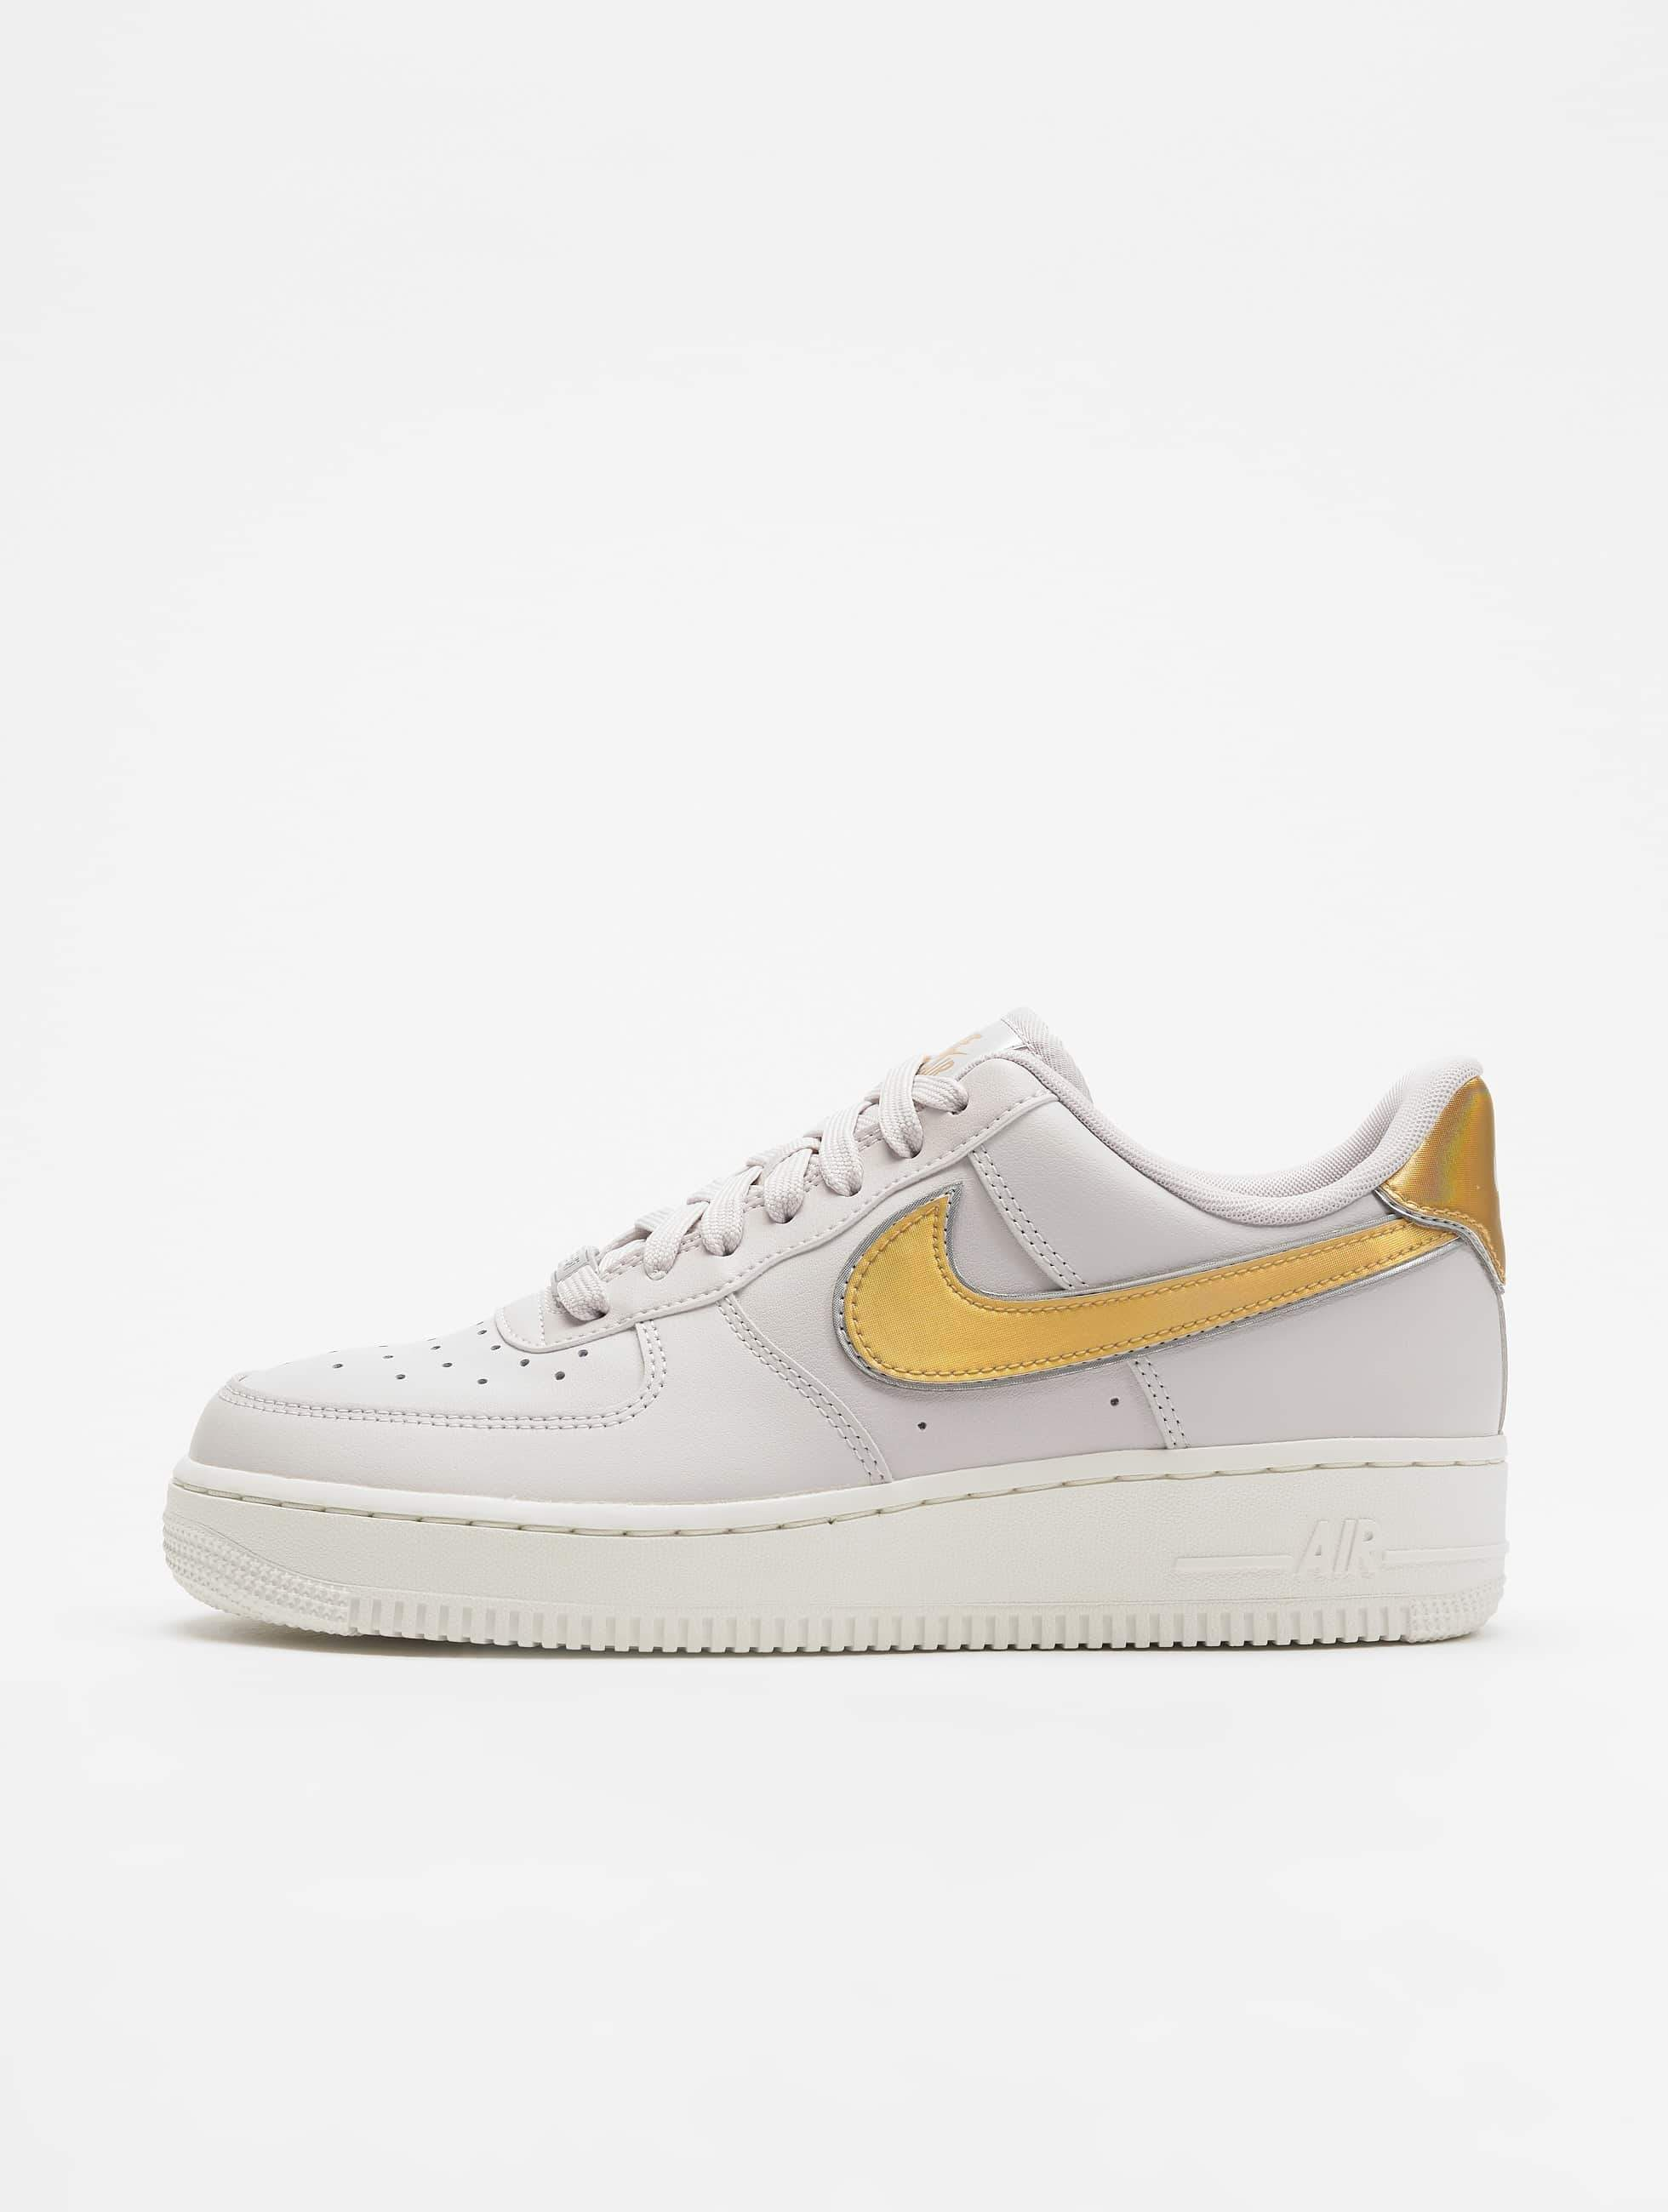 1664accf463 Nike schoen / sneaker Air Force 1 07 Metallic in grijs 539720